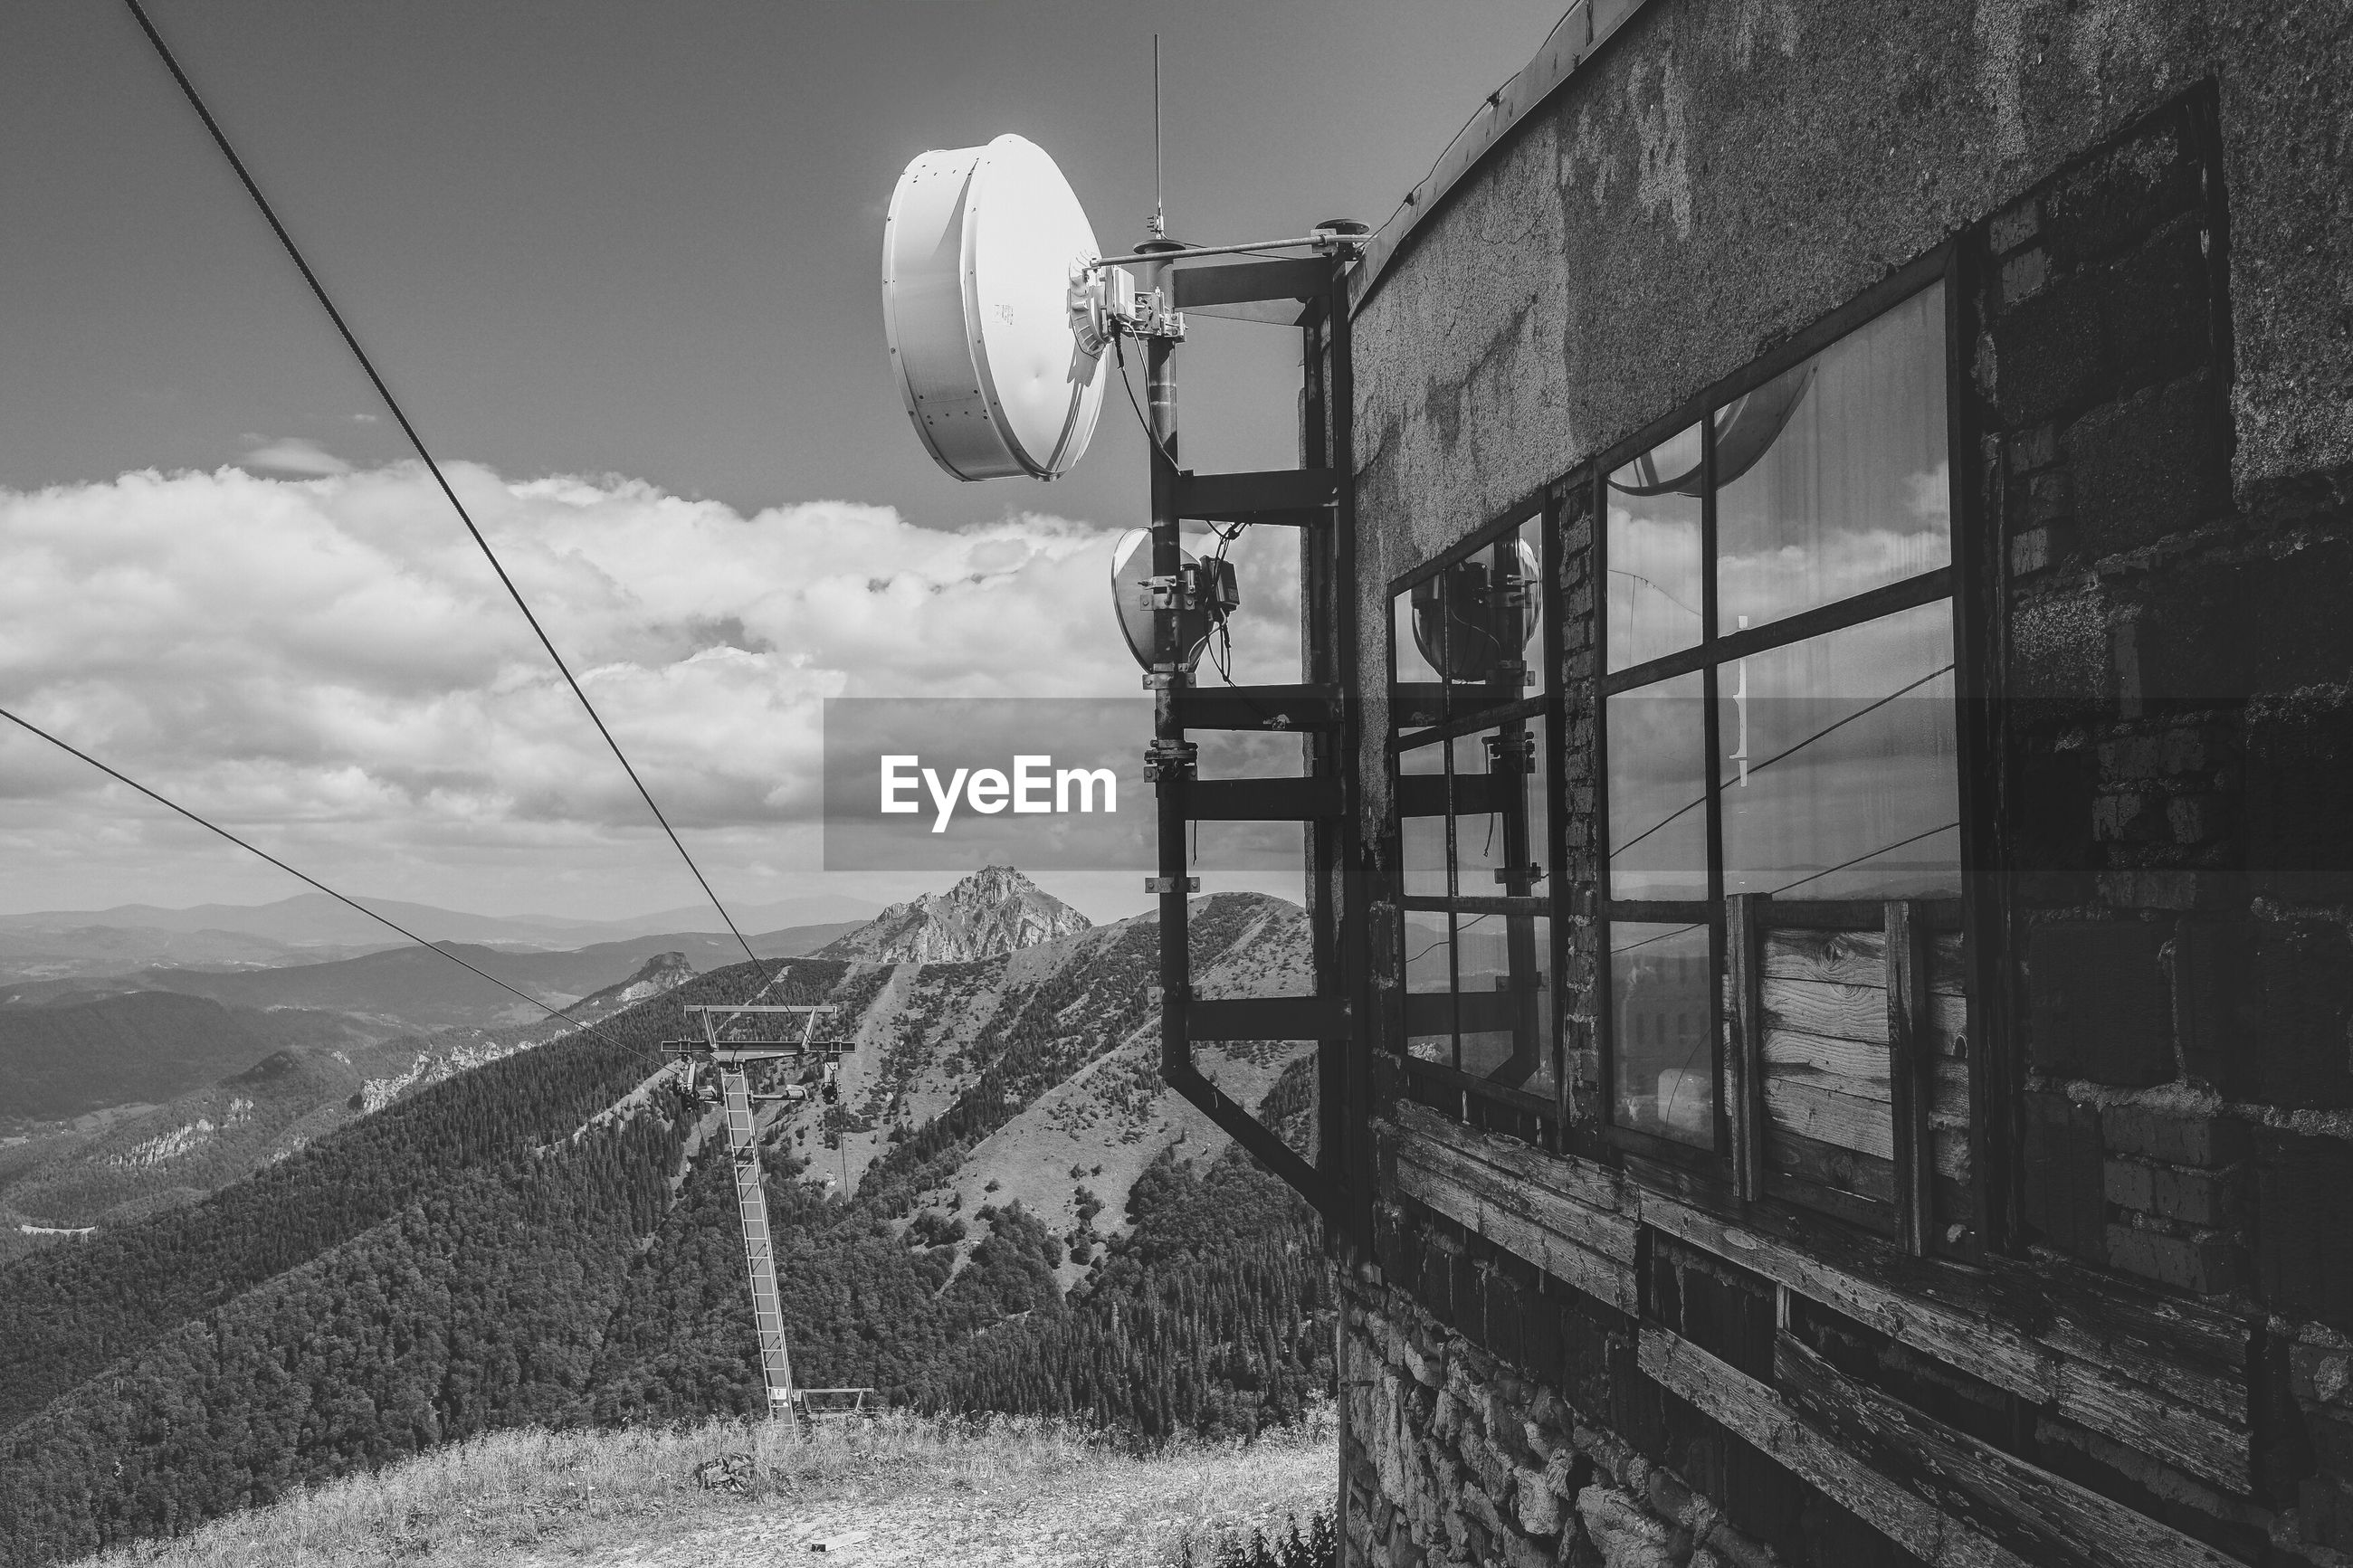 Satellite dishes on building against mountains